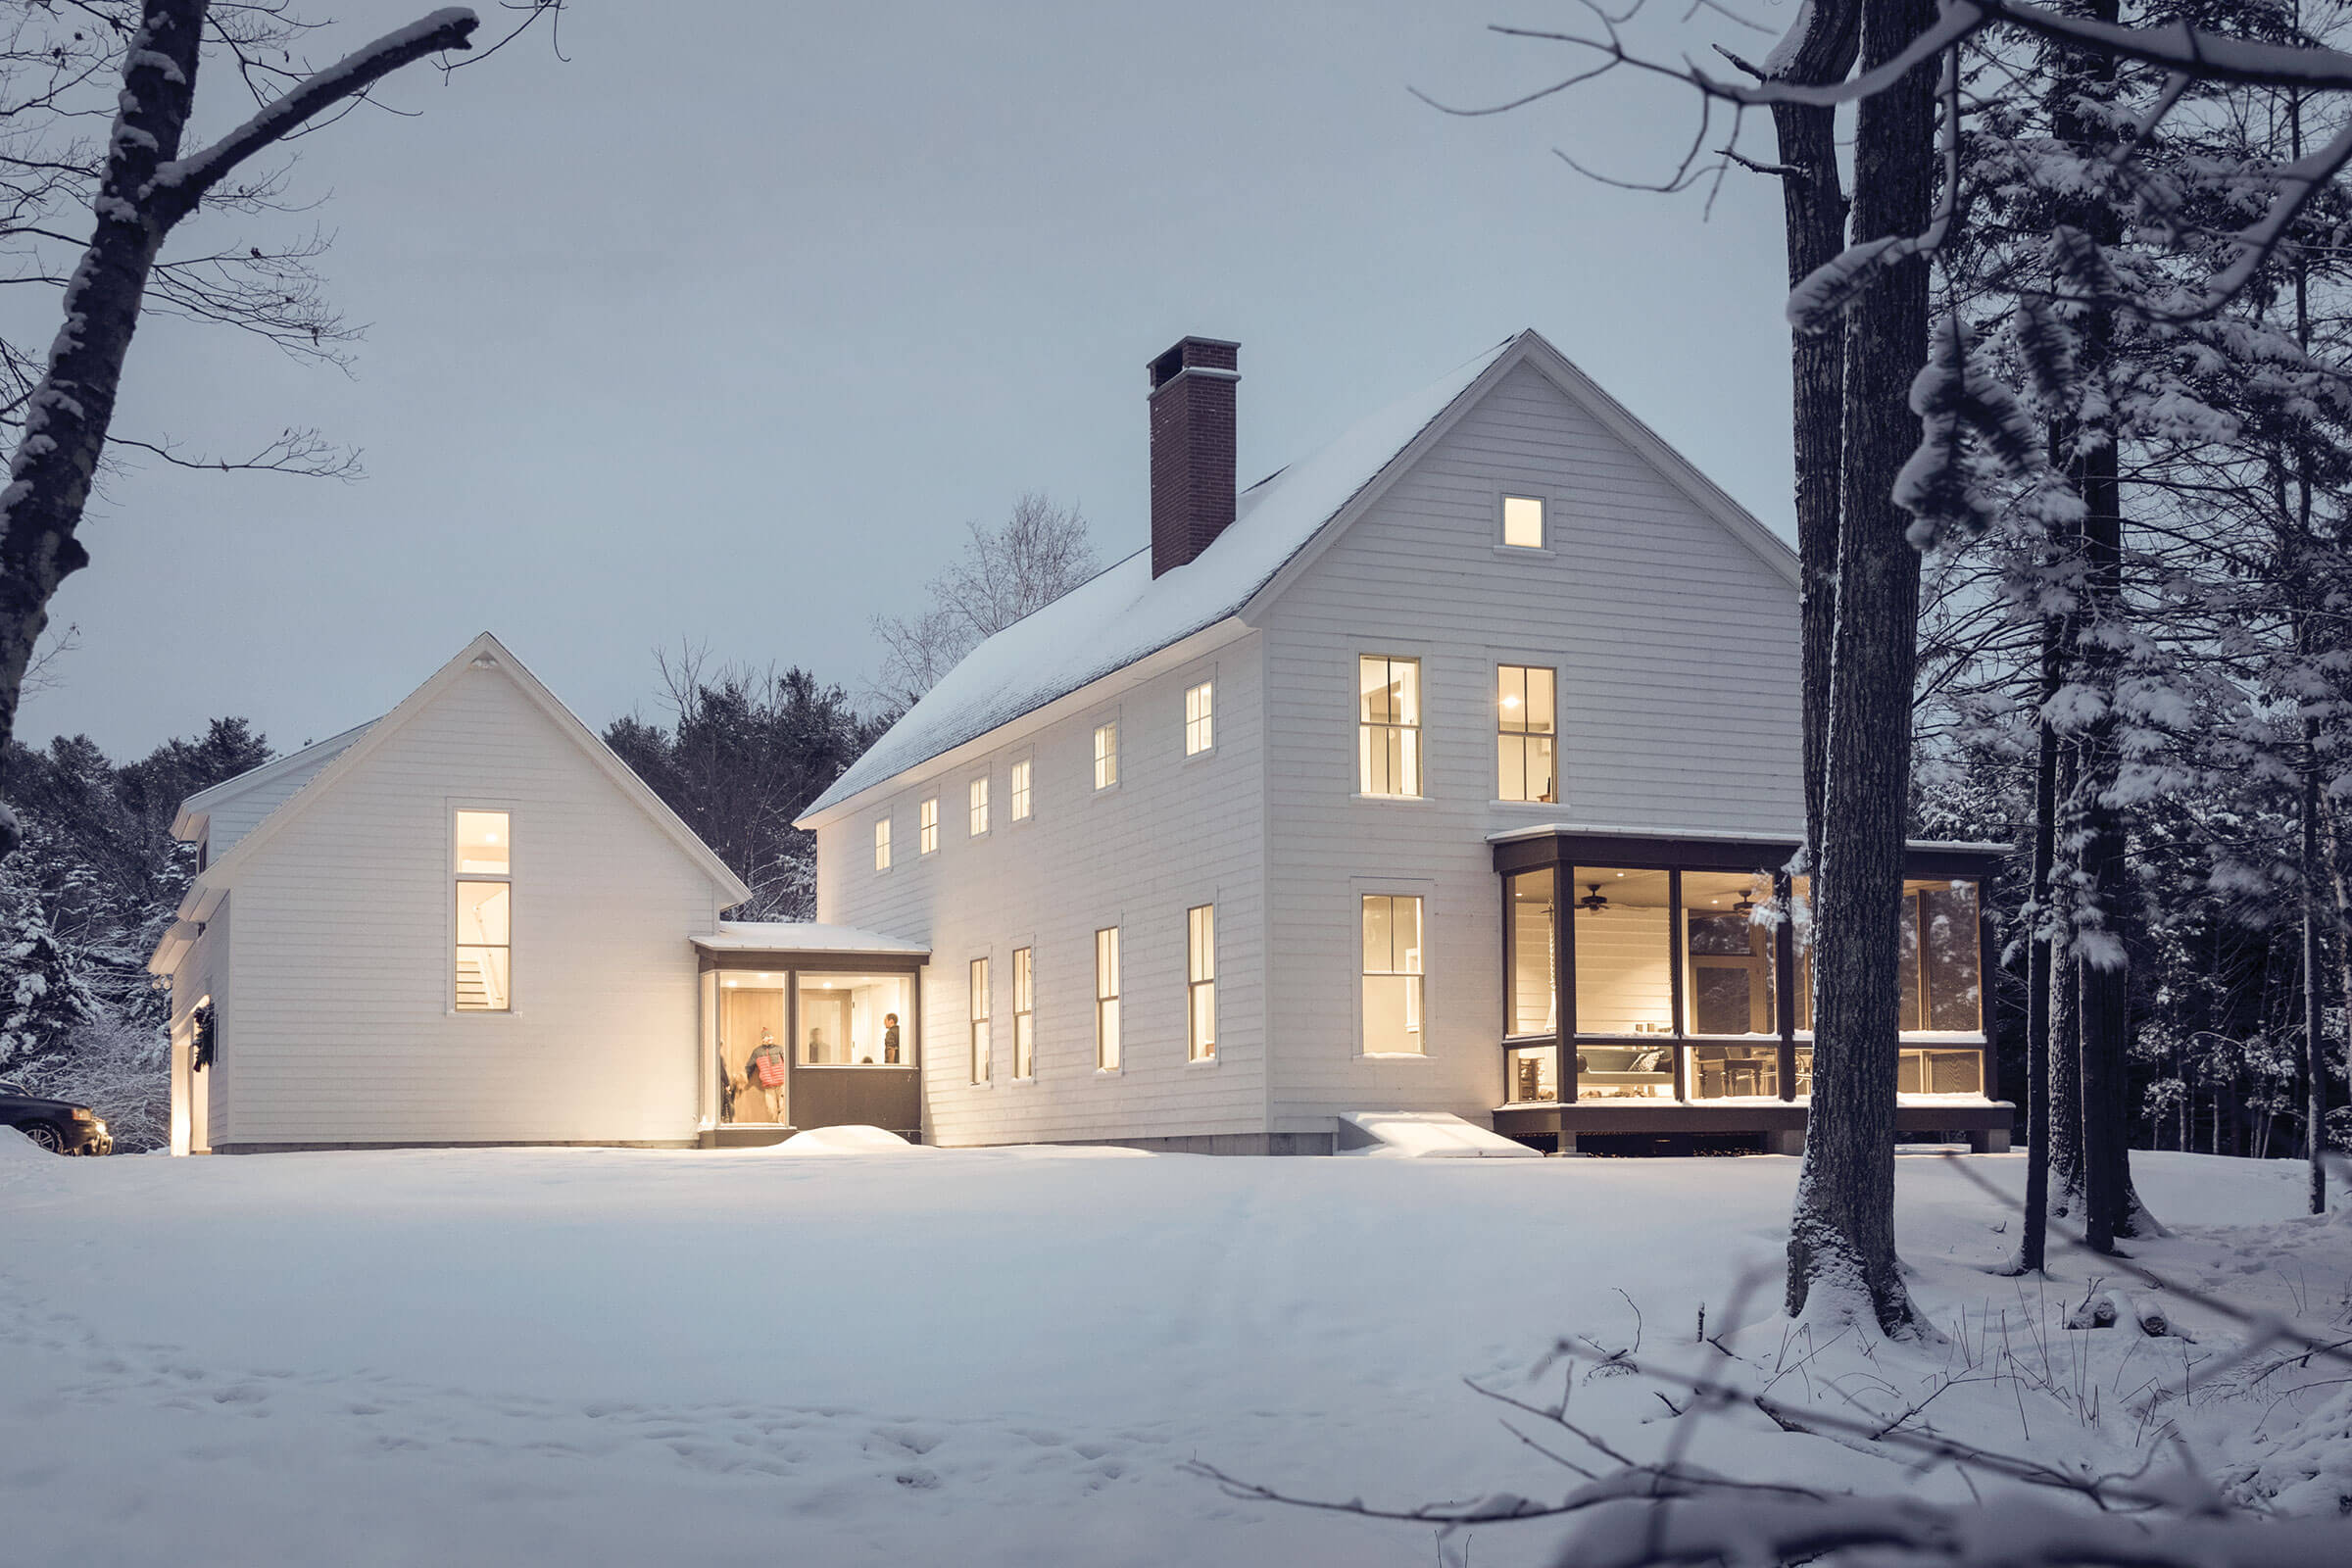 Snowy Exterior View Of Home with Marvin Elevate Windows and Doors